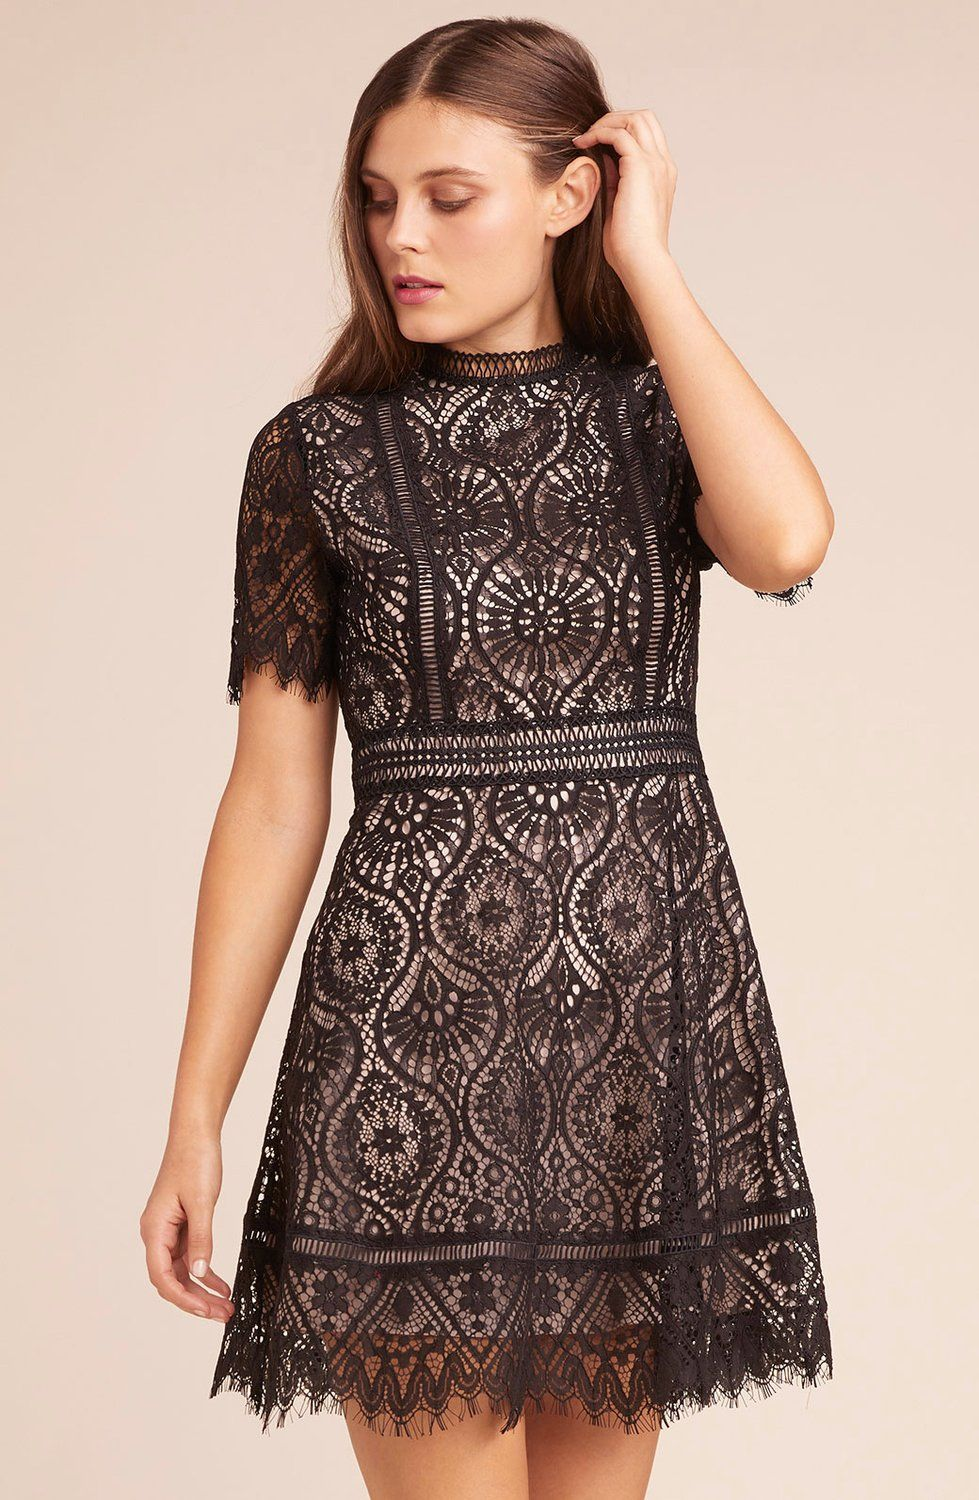 Lace dress styles 2018  On The List Scalloped Lace Dress  Black    fall style